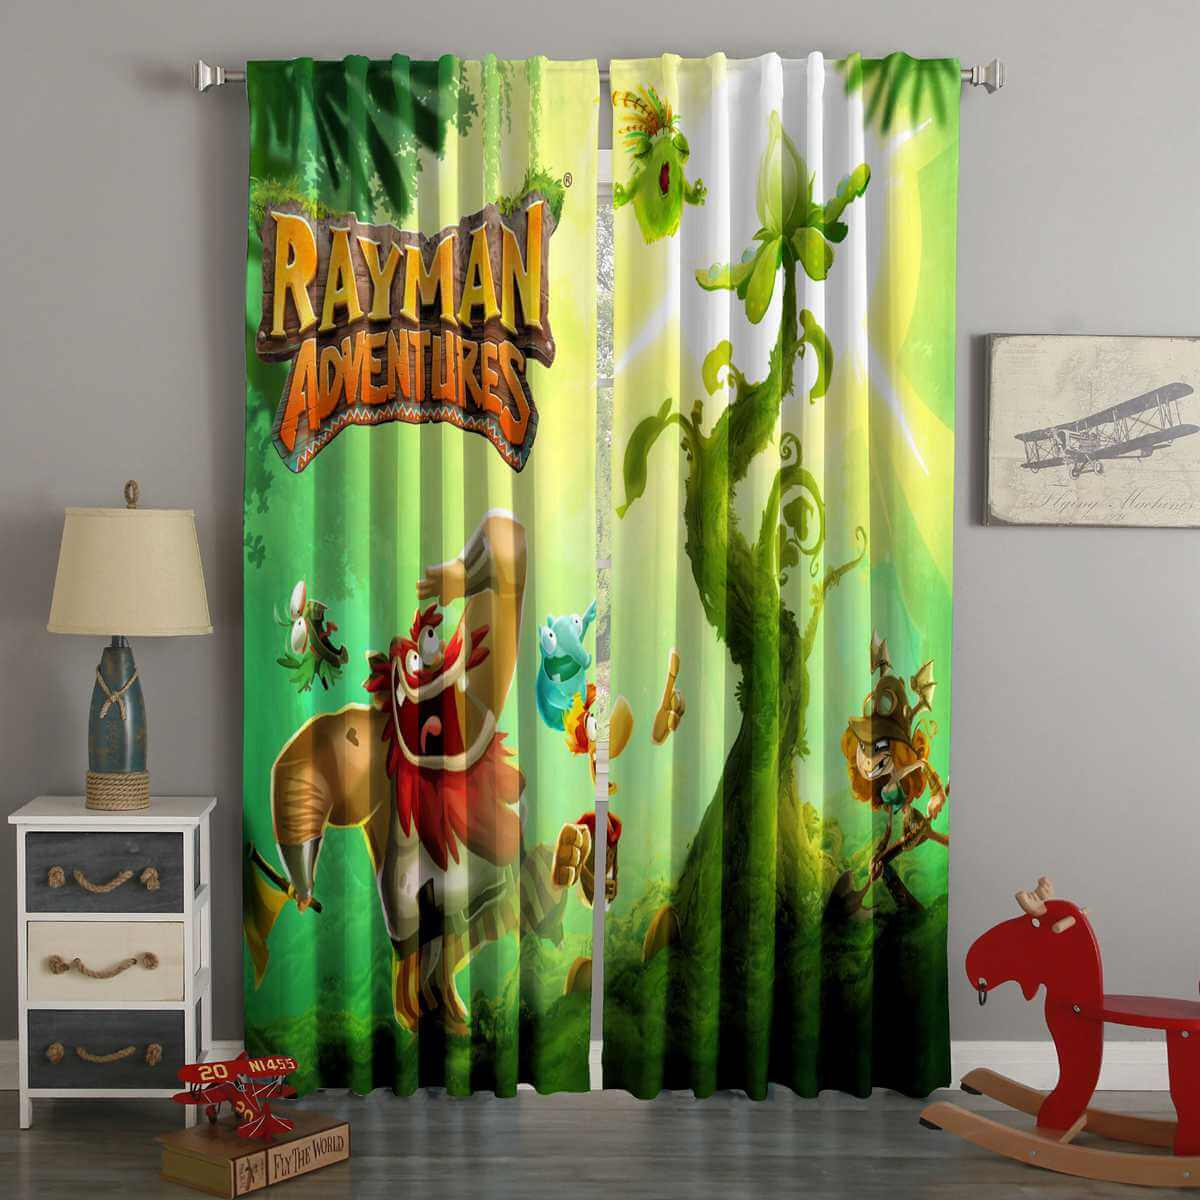 3D Printed Rayman Adventures Style Custom Living Room Curtains